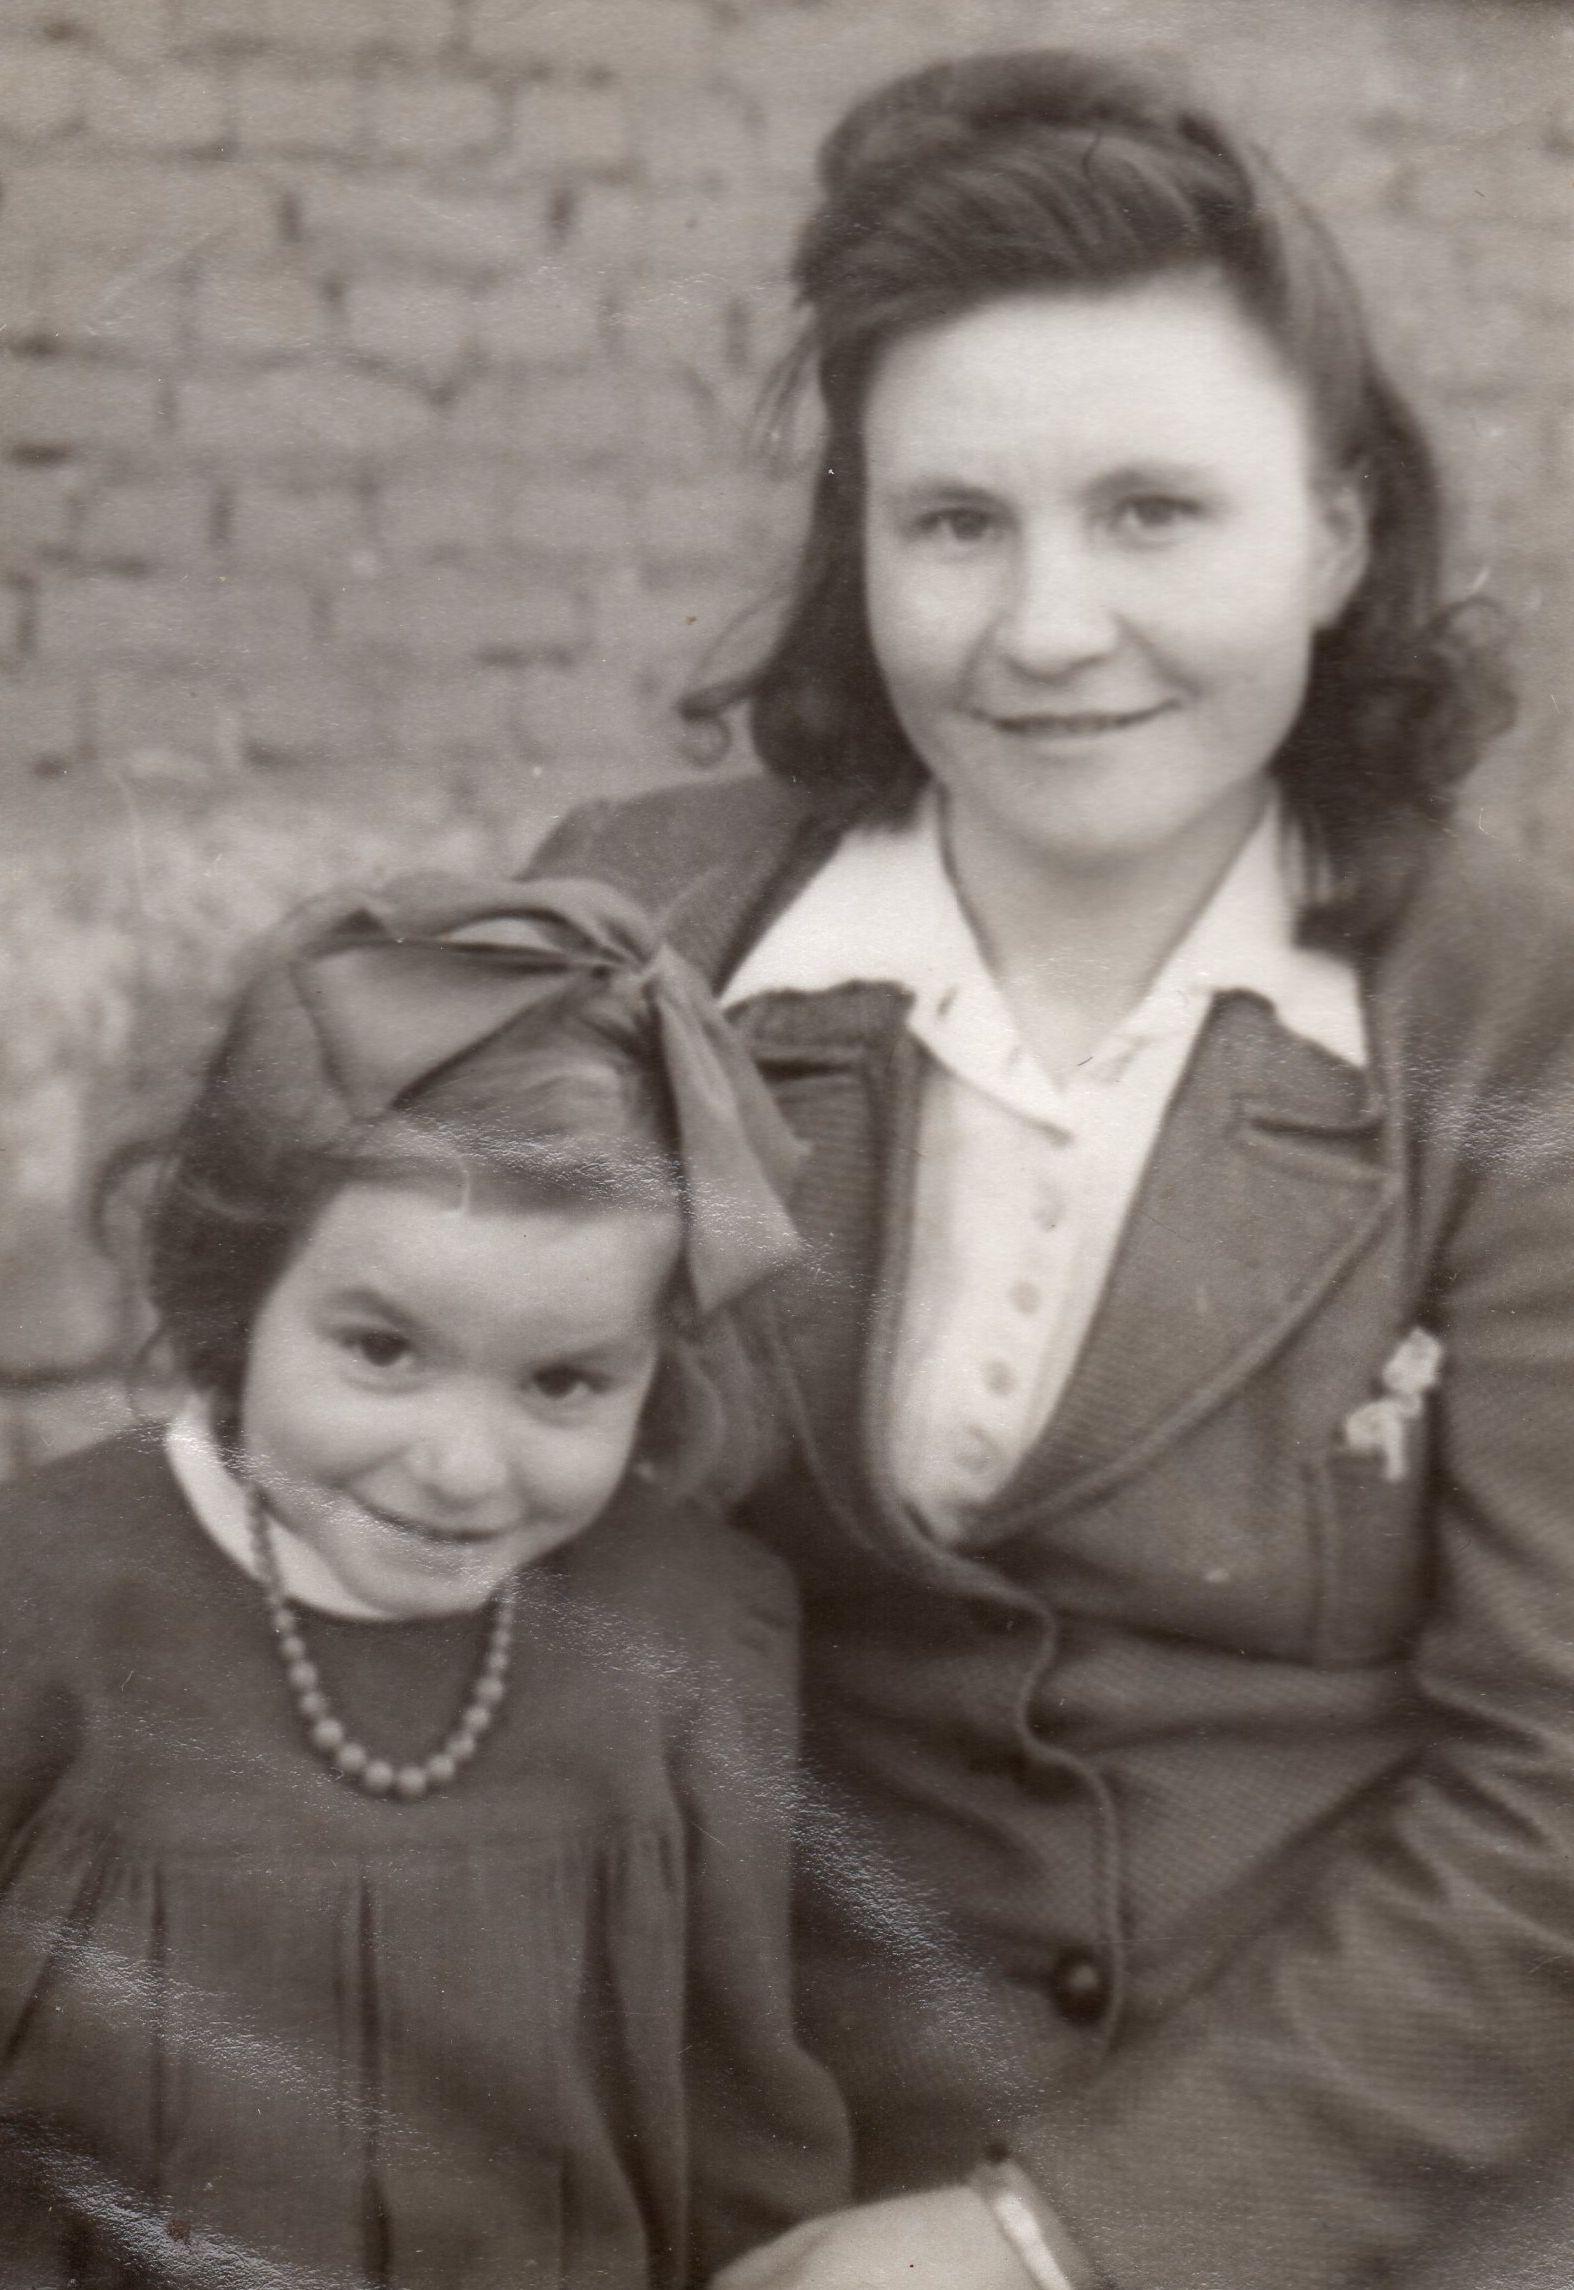 Black  and white pic taken outdoors. Emilija is seated and wearing a jacket and white shirt and Zenona is wearing a dress pleated on  a high bodice, with a necklace and a ribbon in her hair. Both are smiling.